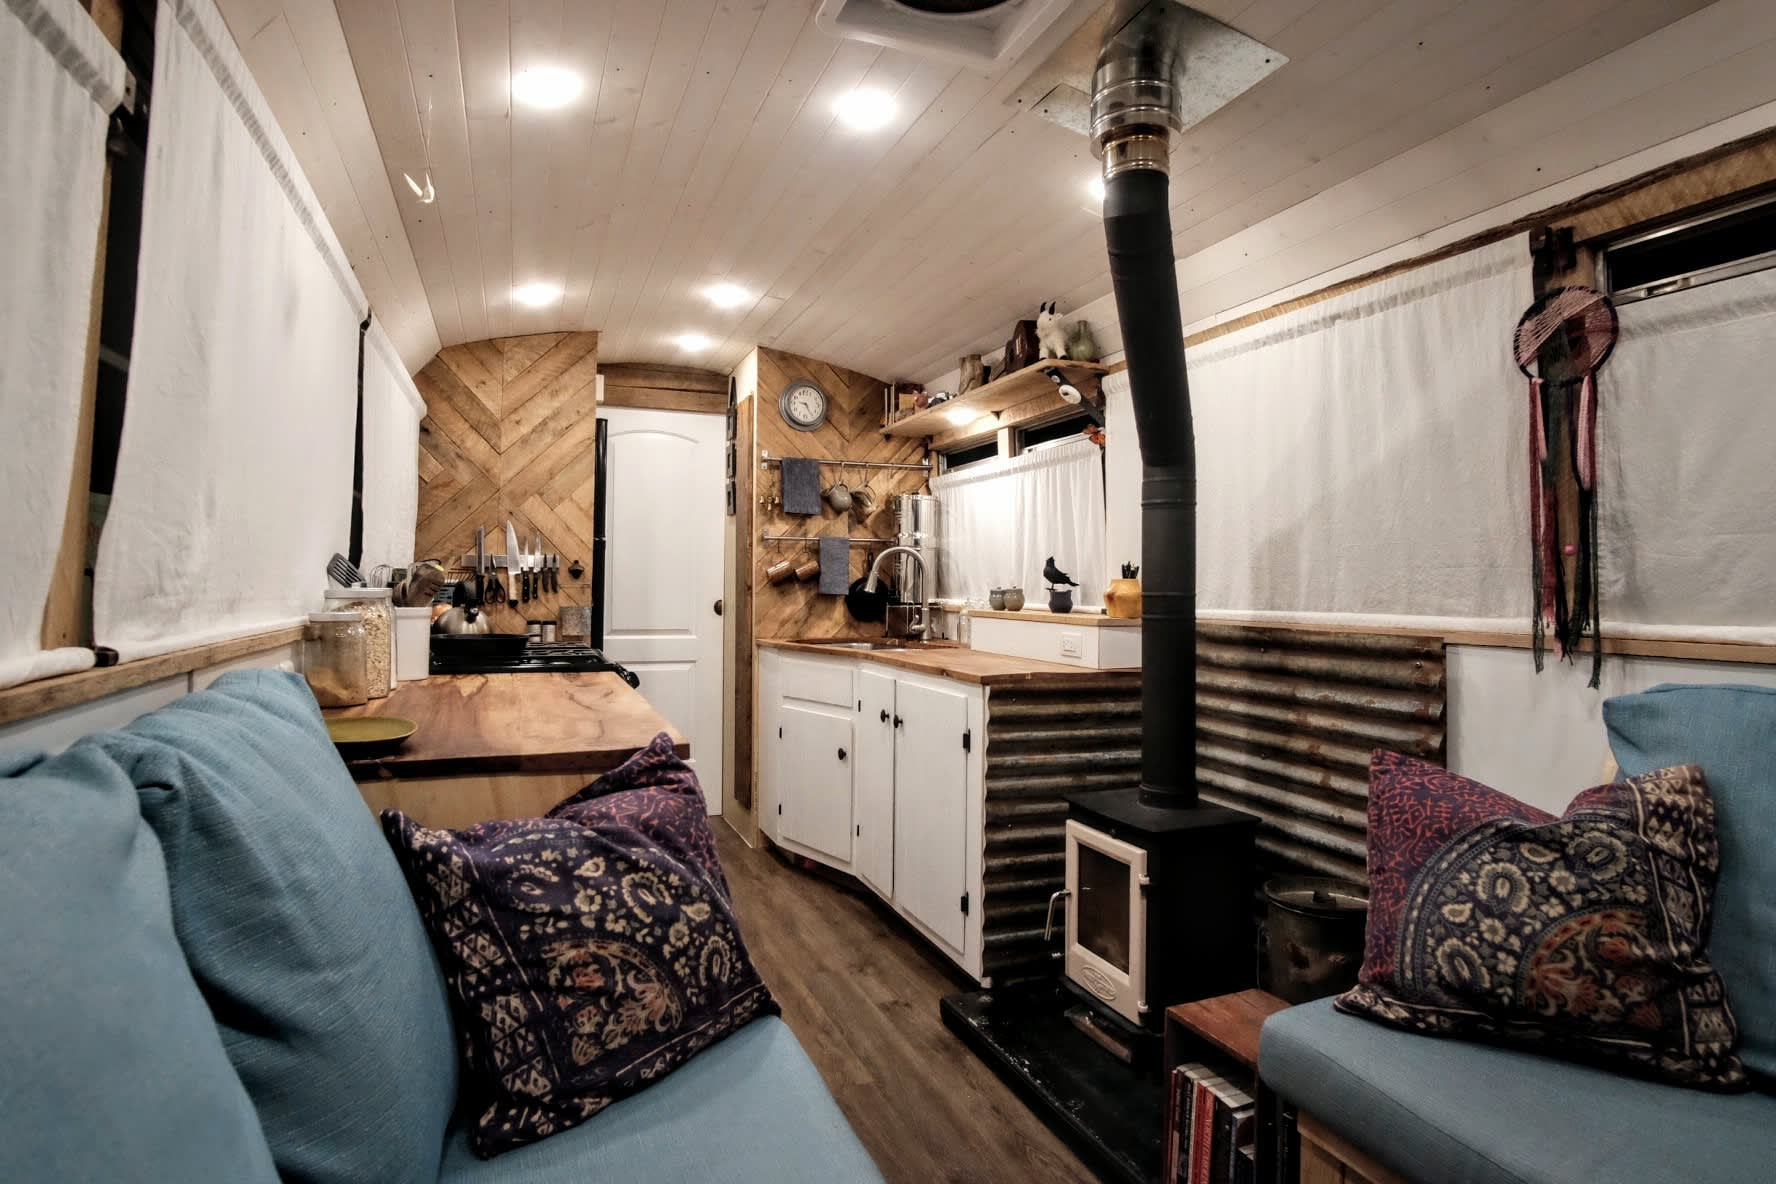 8 Tiny Houses On Wheels That Will Whisk You Away Apartment Therapy